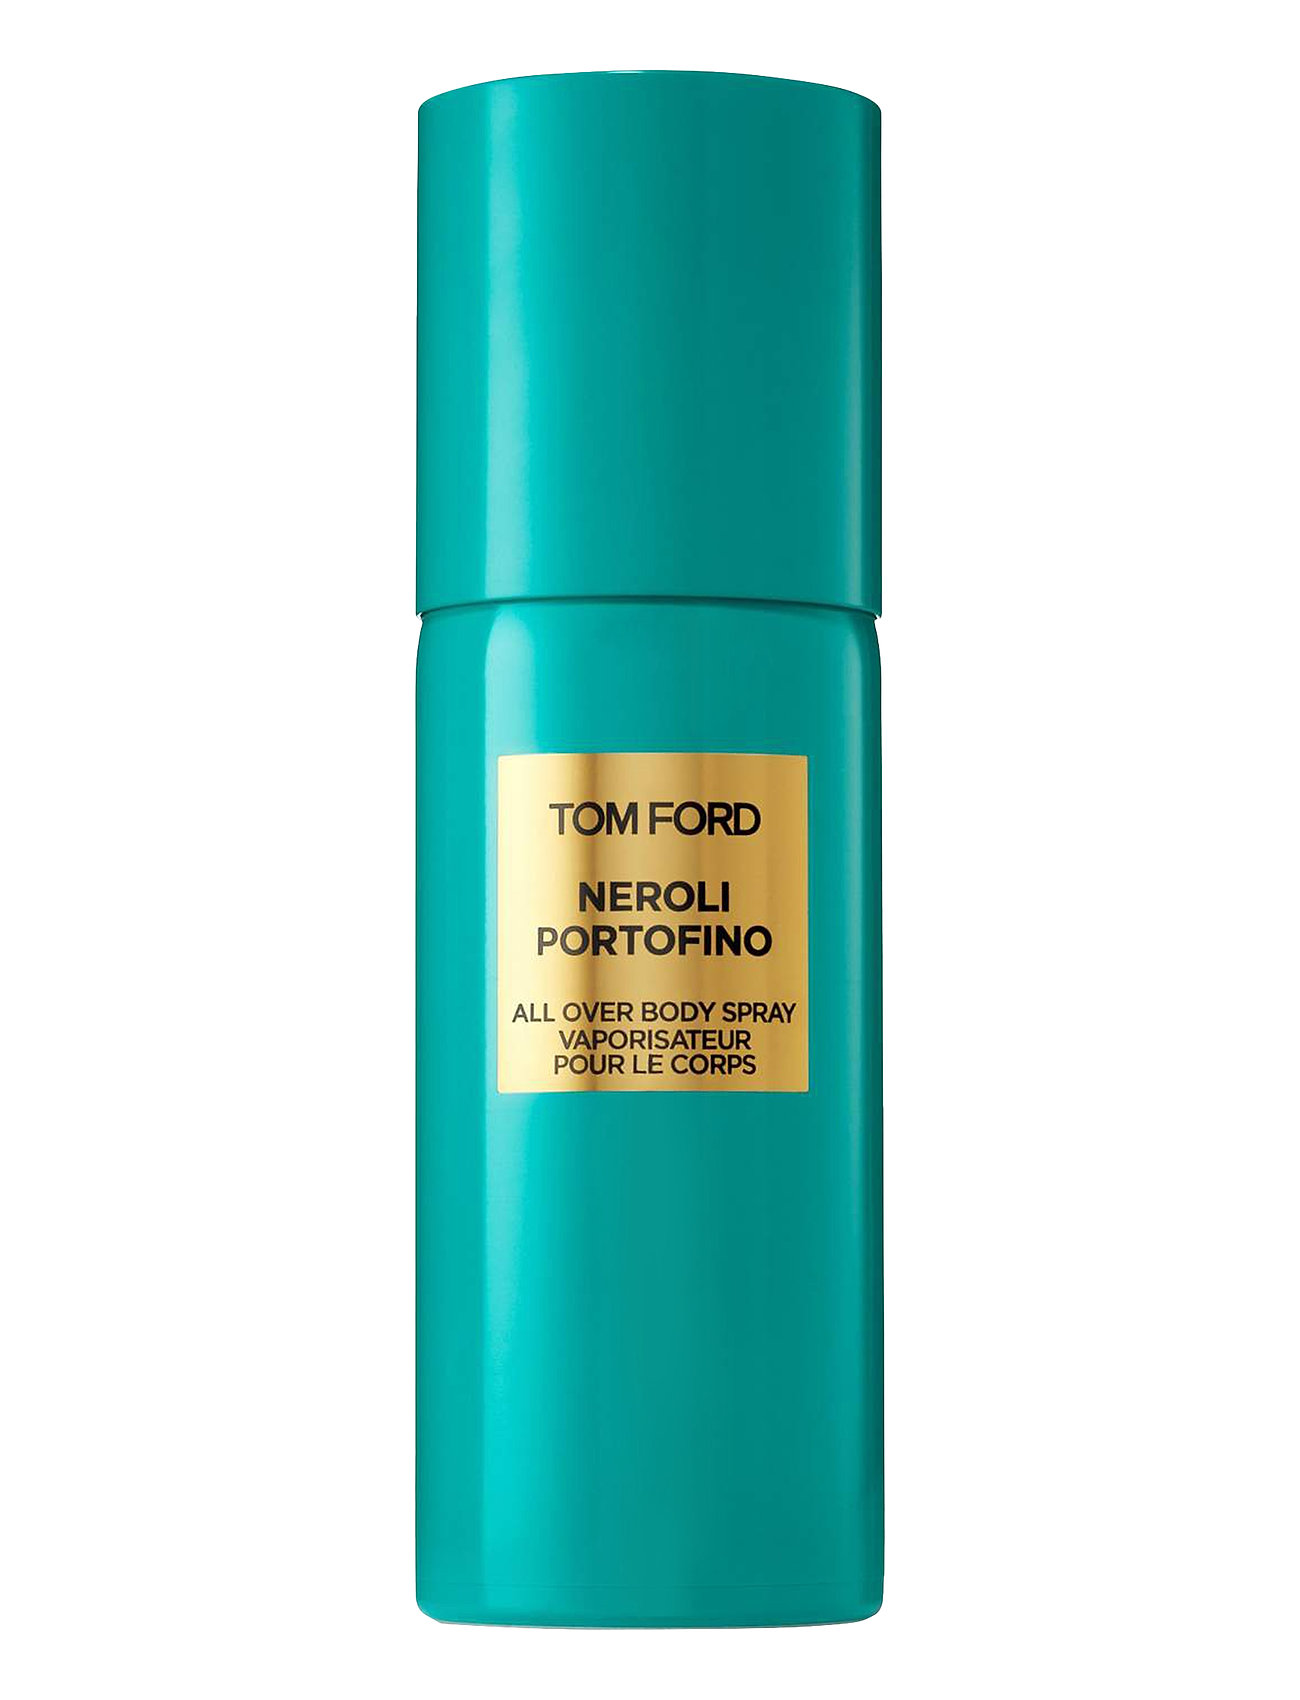 tom ford Neroli portofino all over body spray fra boozt.com dk